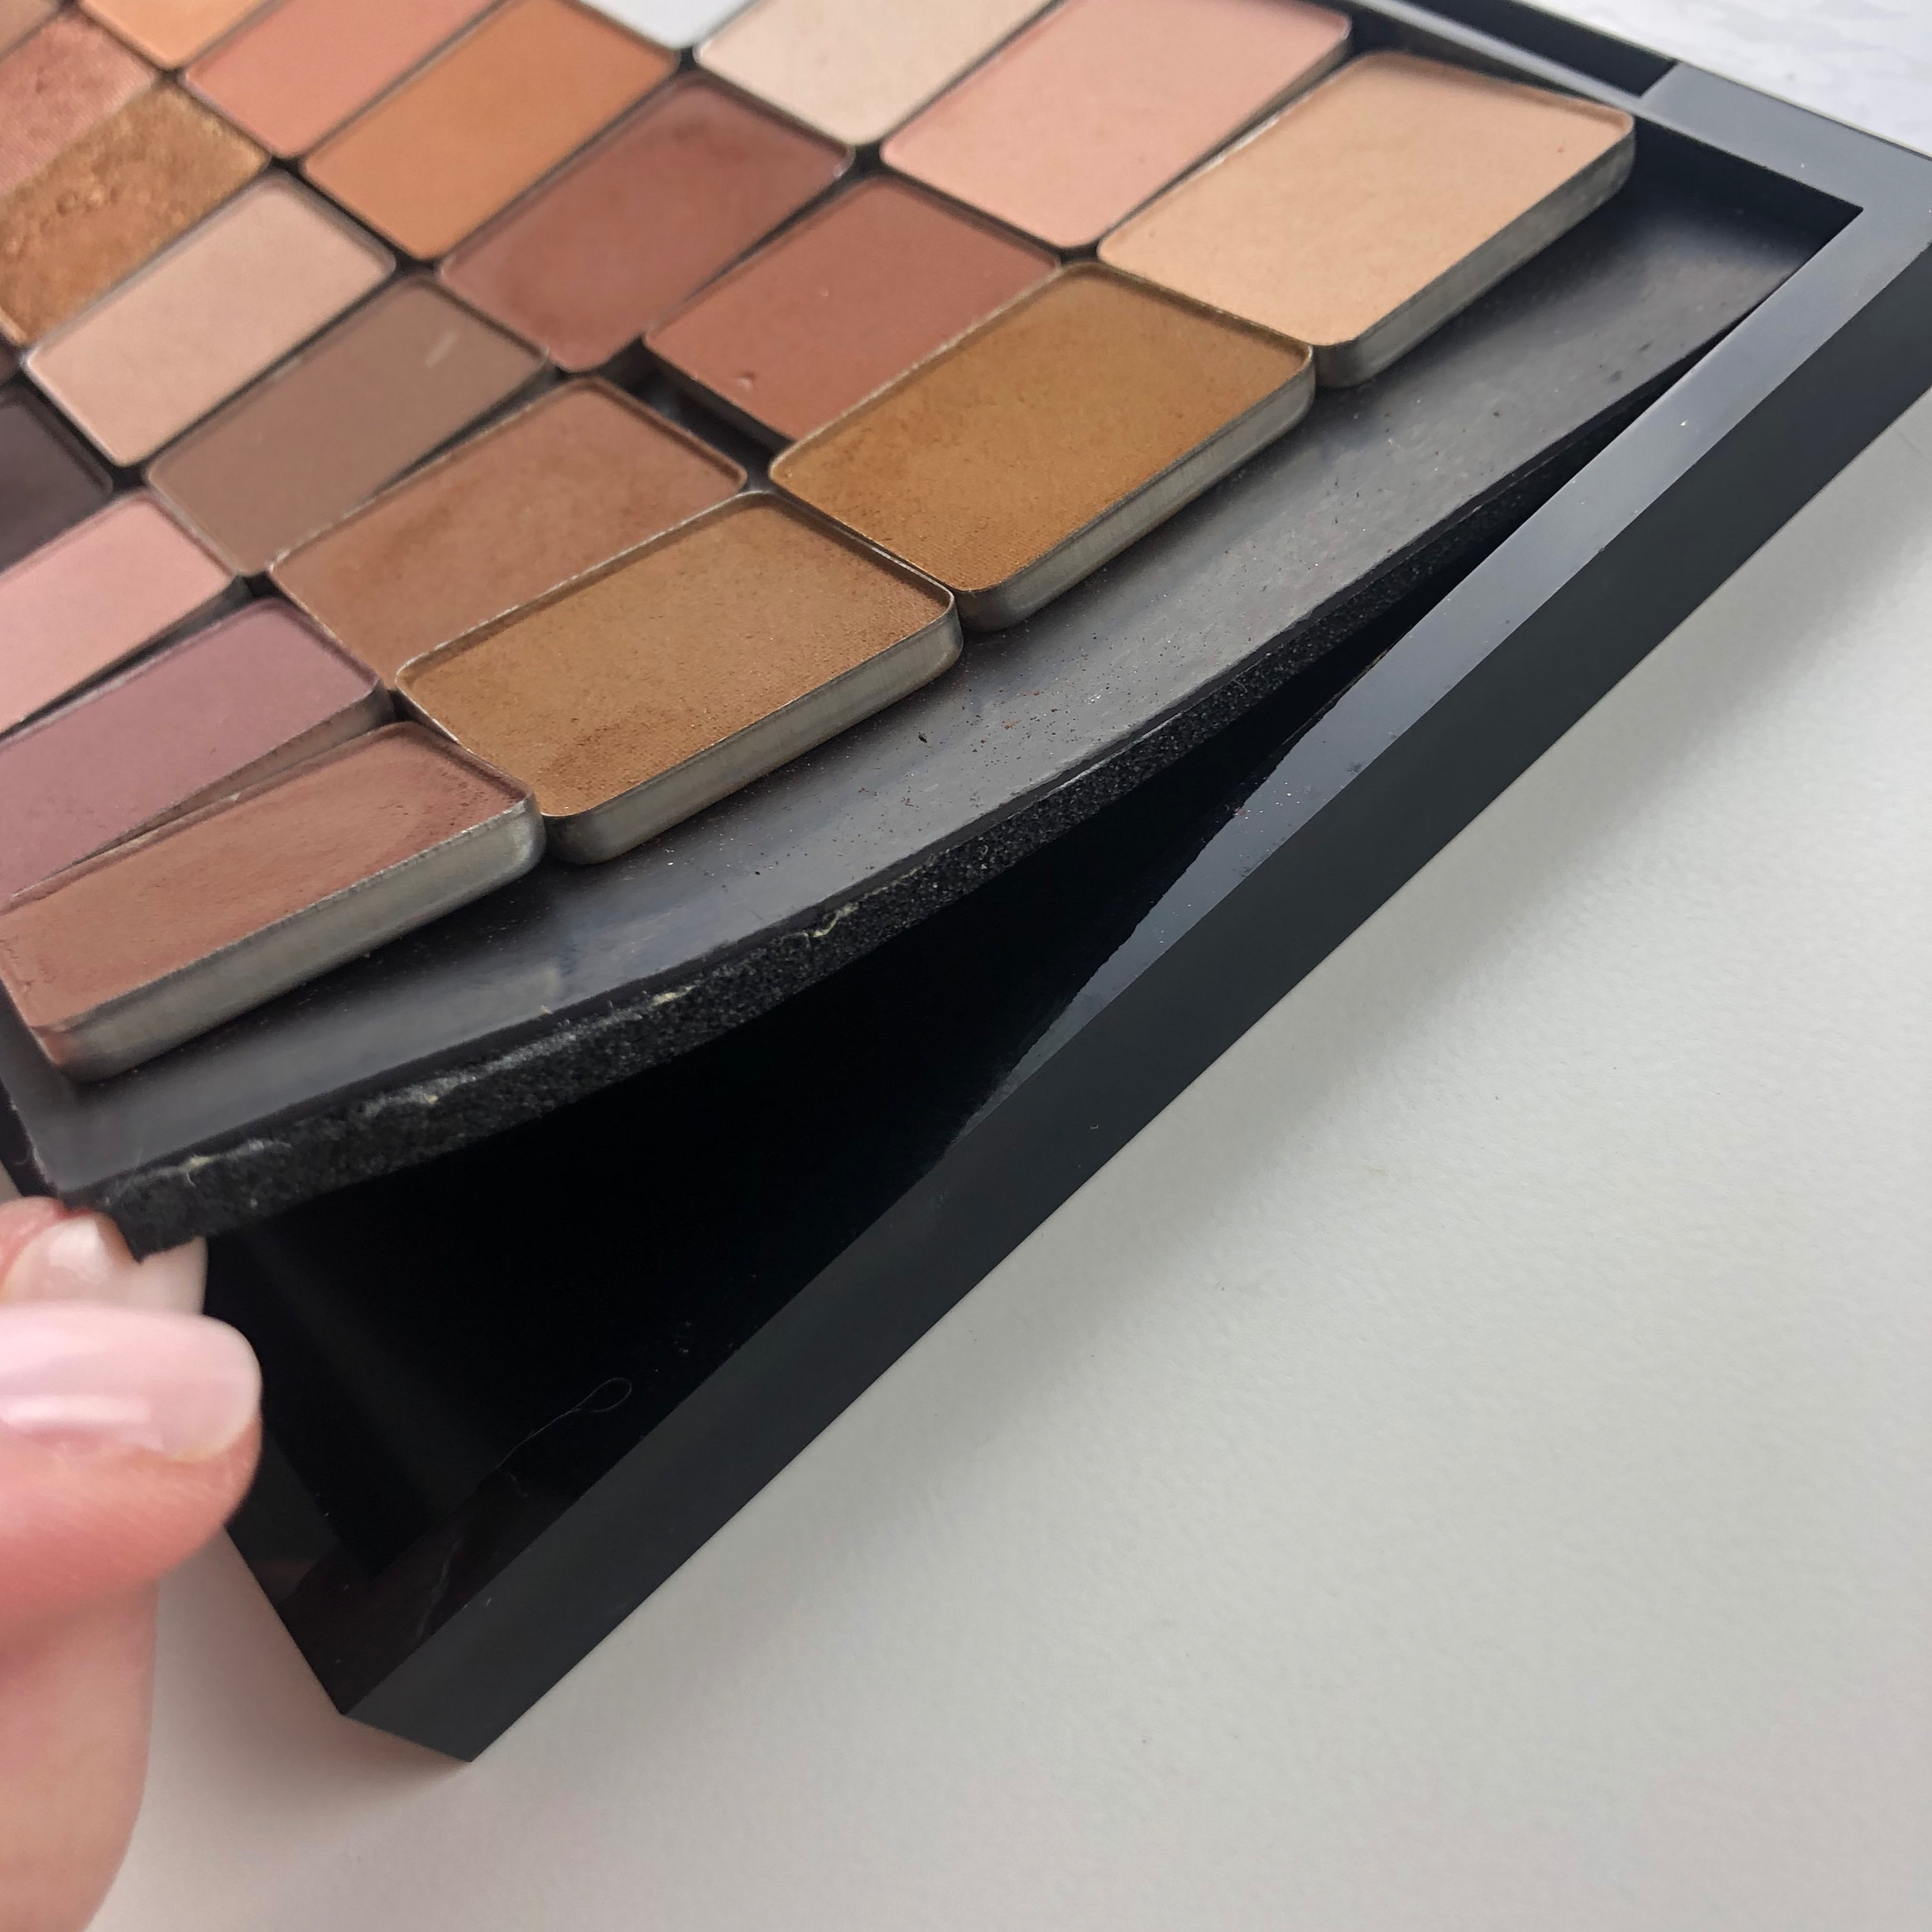 Magnetic sheet + neoprene lining in a MAC large pro palette